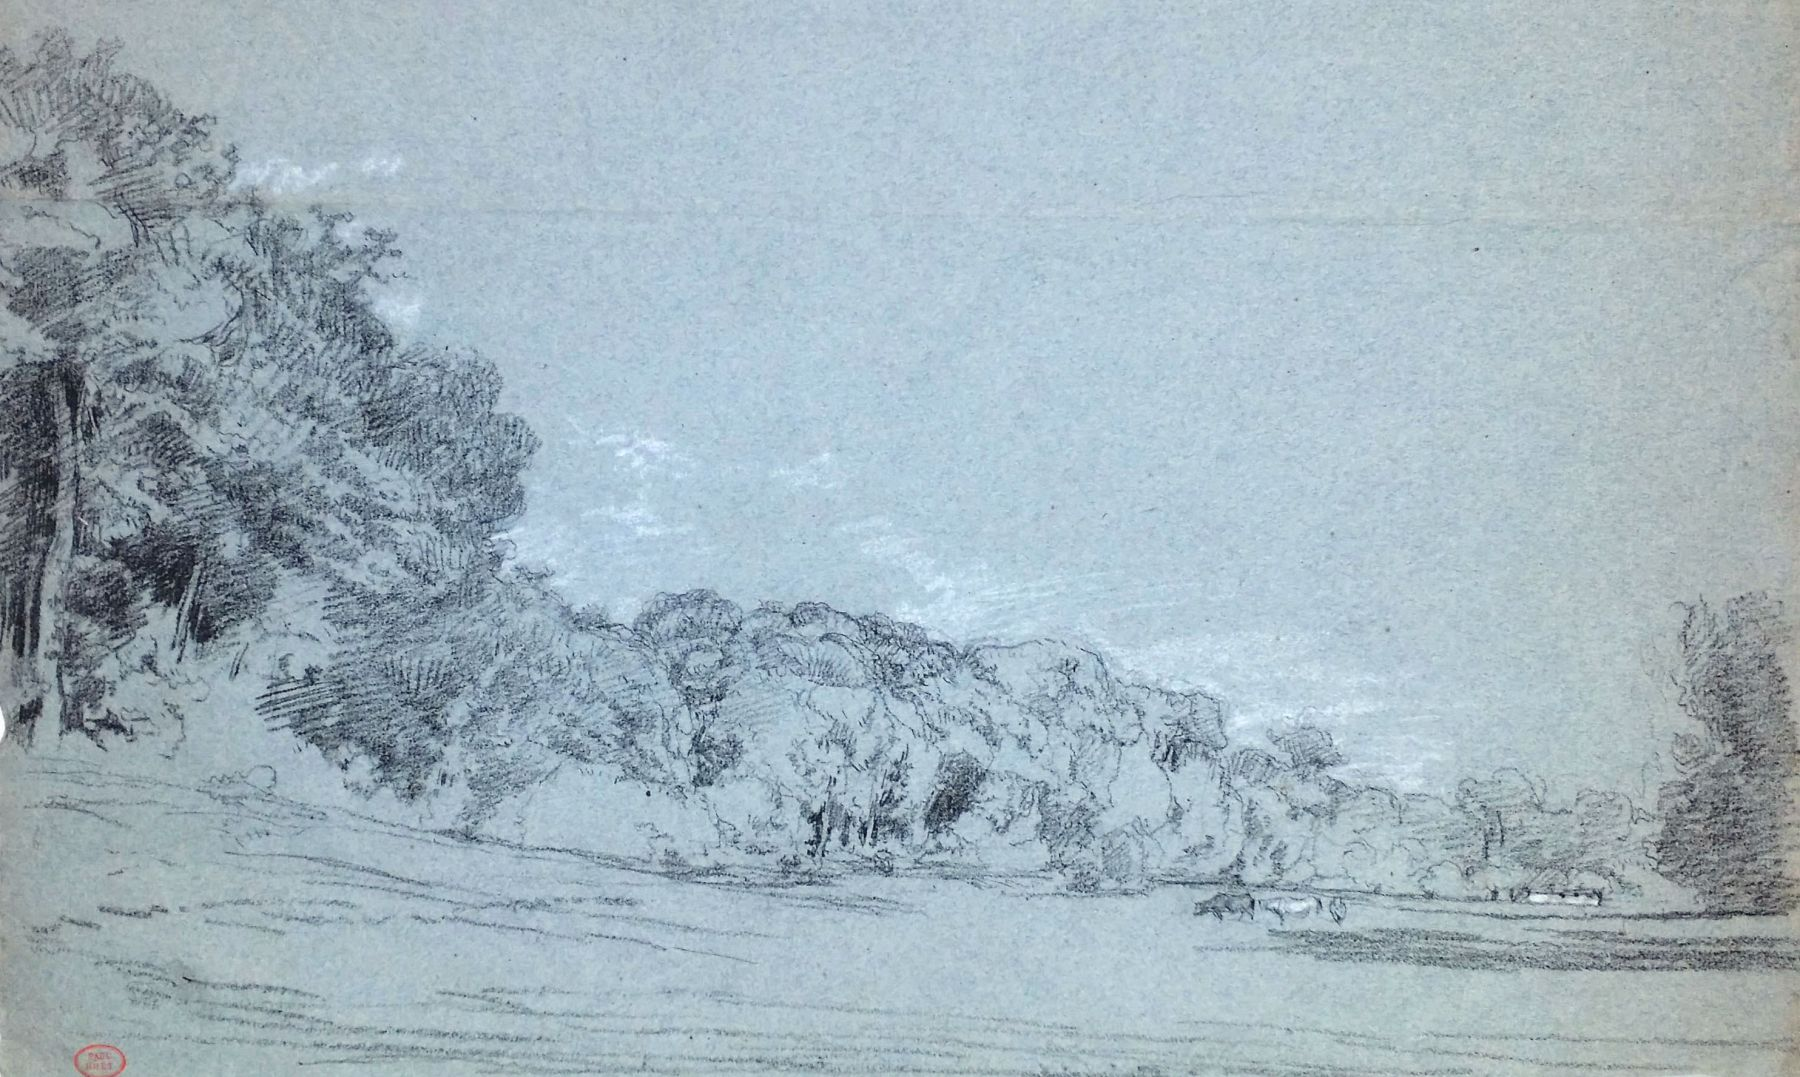 Paul Huet, Vaches en lisière de foret, Charcoal heightened with white chalk on blue paper 11 3/16 x 18 1/2 inches